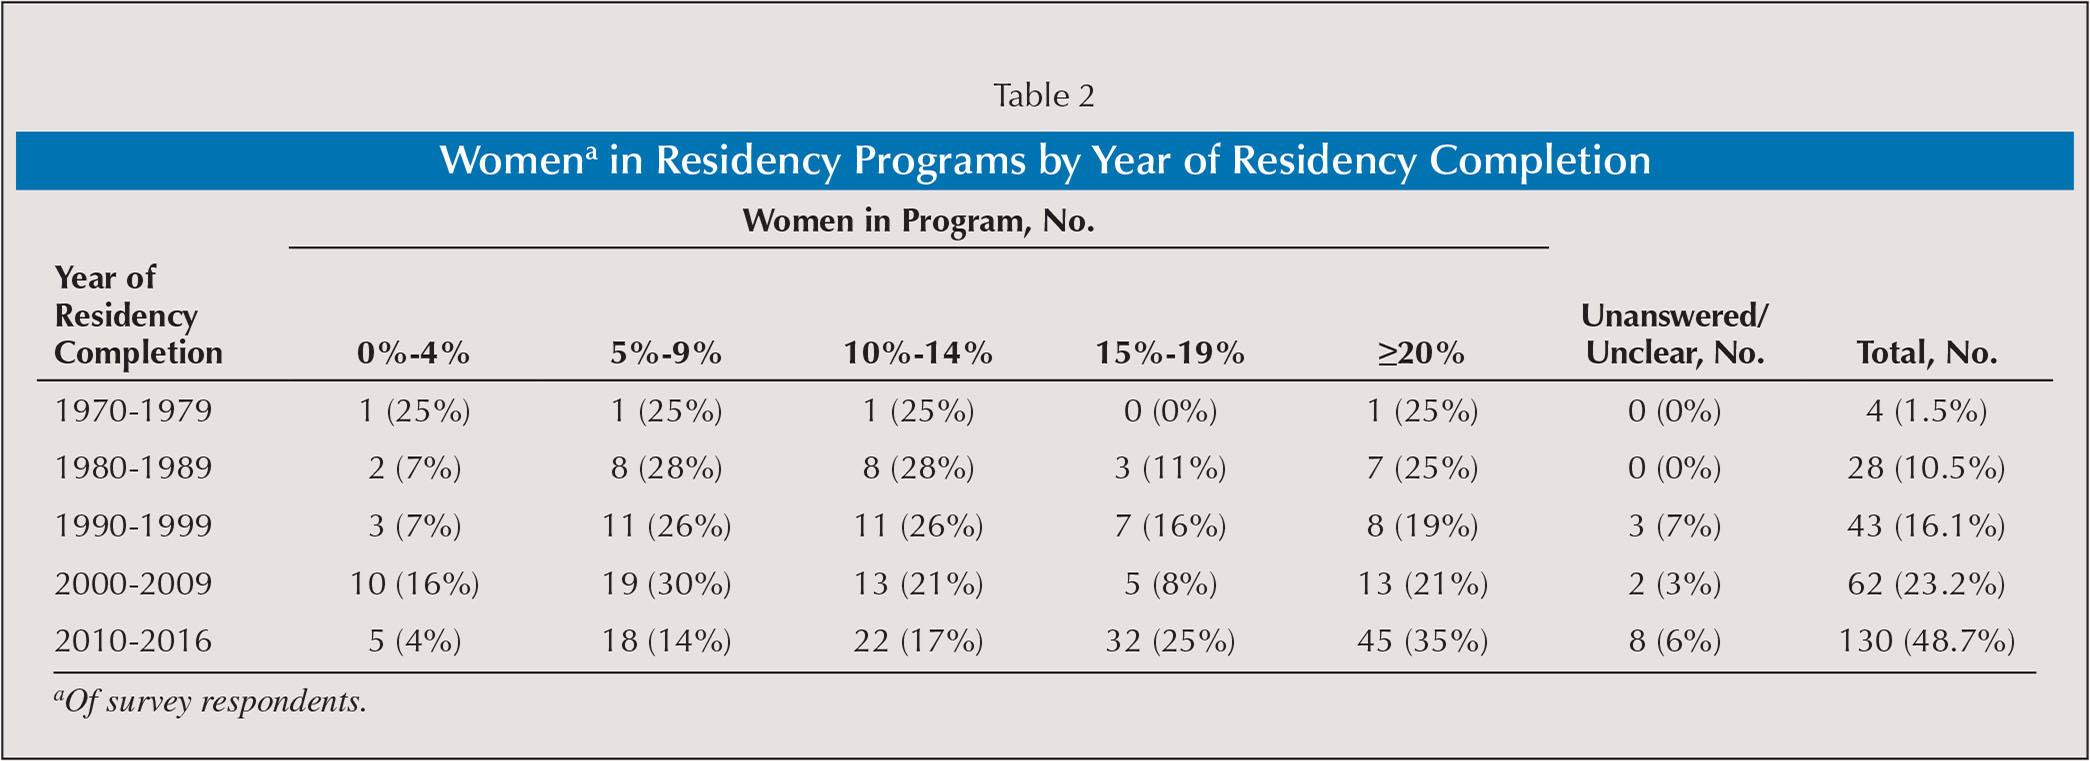 Womena in Residency Programs by Year of Residency Completion